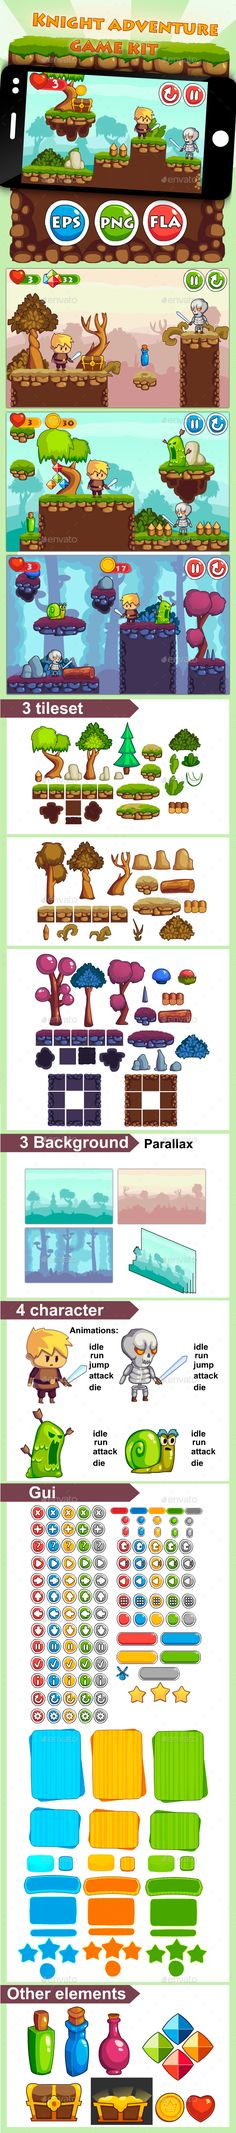 Knight Adventure Game Kit - Game Kits Game Assets | Download http://graphicriver.net/item/knight-adventure-game-kit/13431568?ref=sinzo